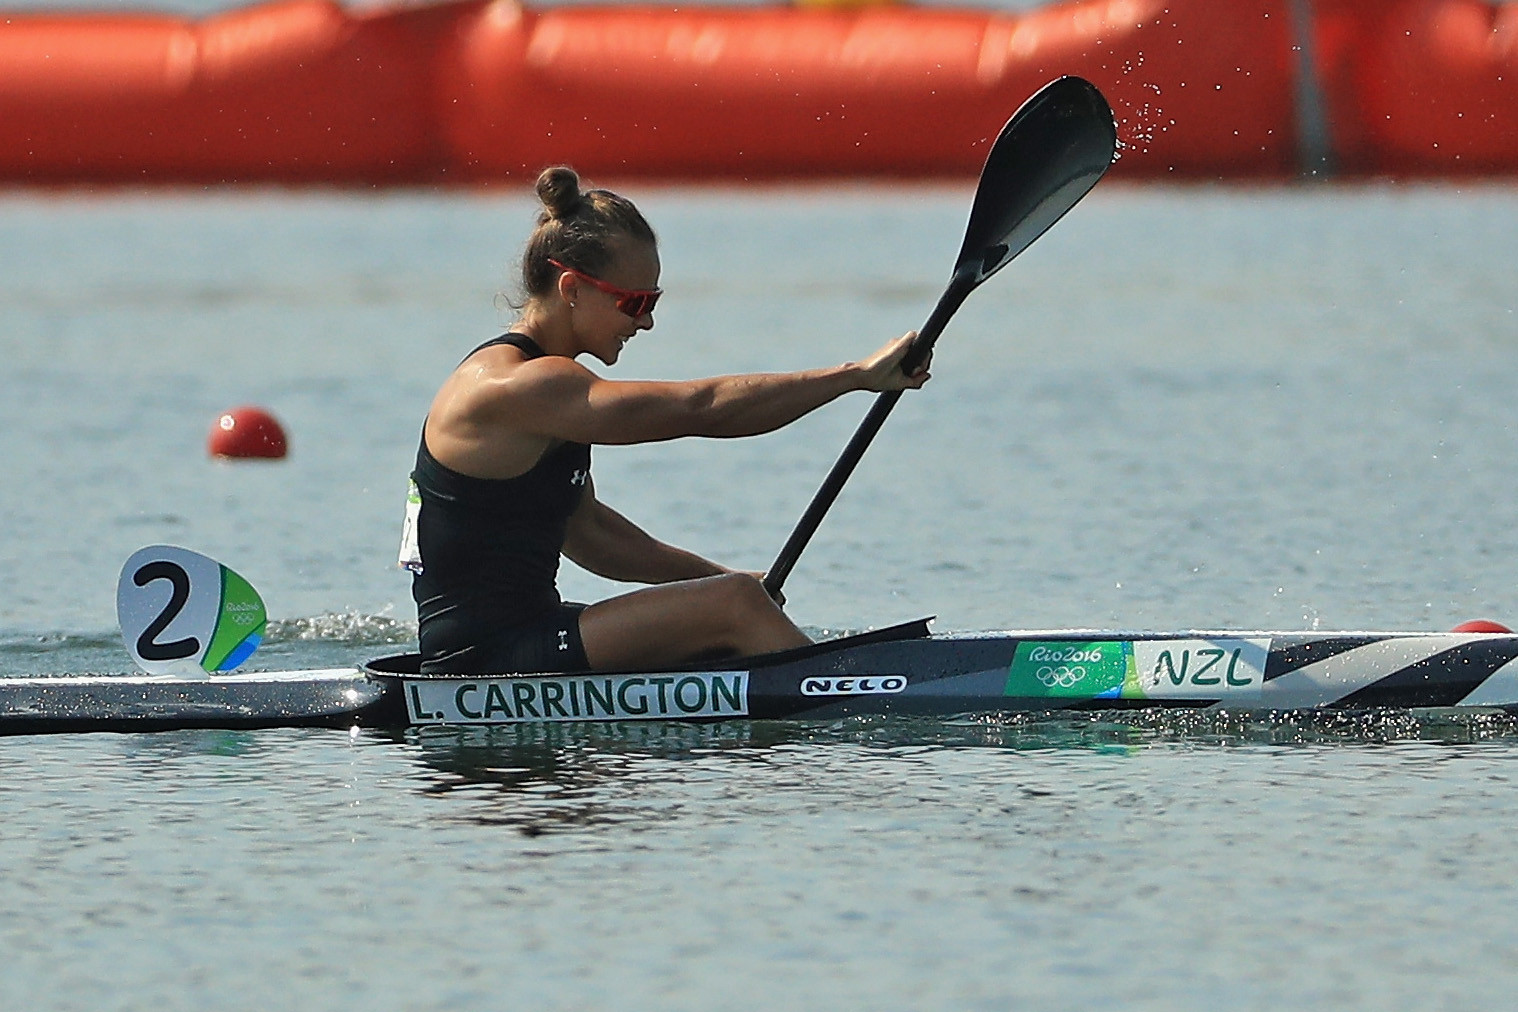 Double Olympic champion Lisa Carrington of New Zealand topped the qualifiers for the women's K1 200m event at the ICF Oceania Canoe Sprint Championships, with the final tomorrow ©Getty Images